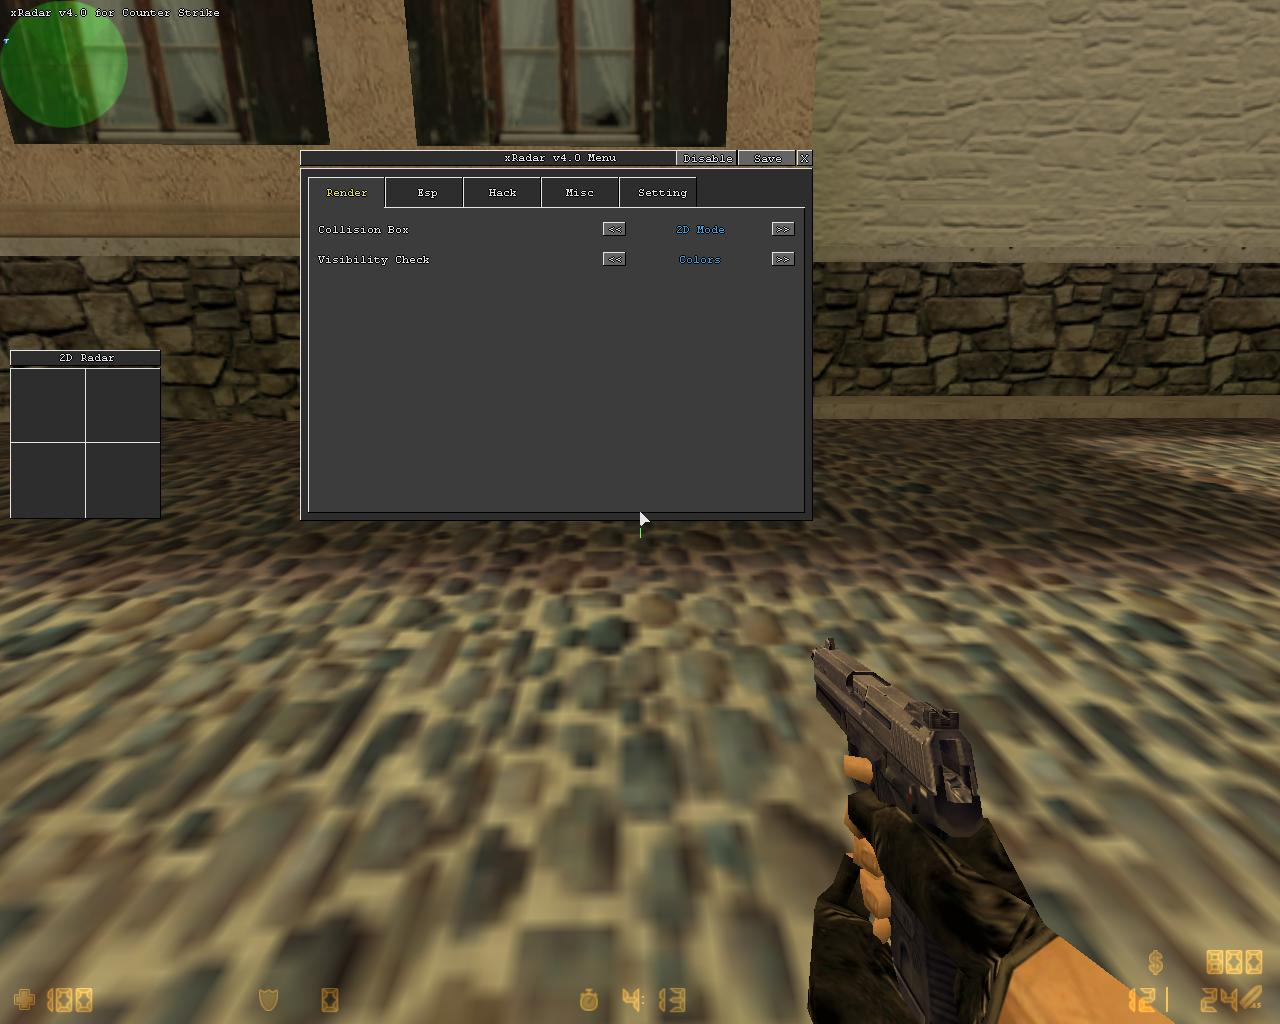 Fresh download center: counter strike wallhack aimbot speed hack.